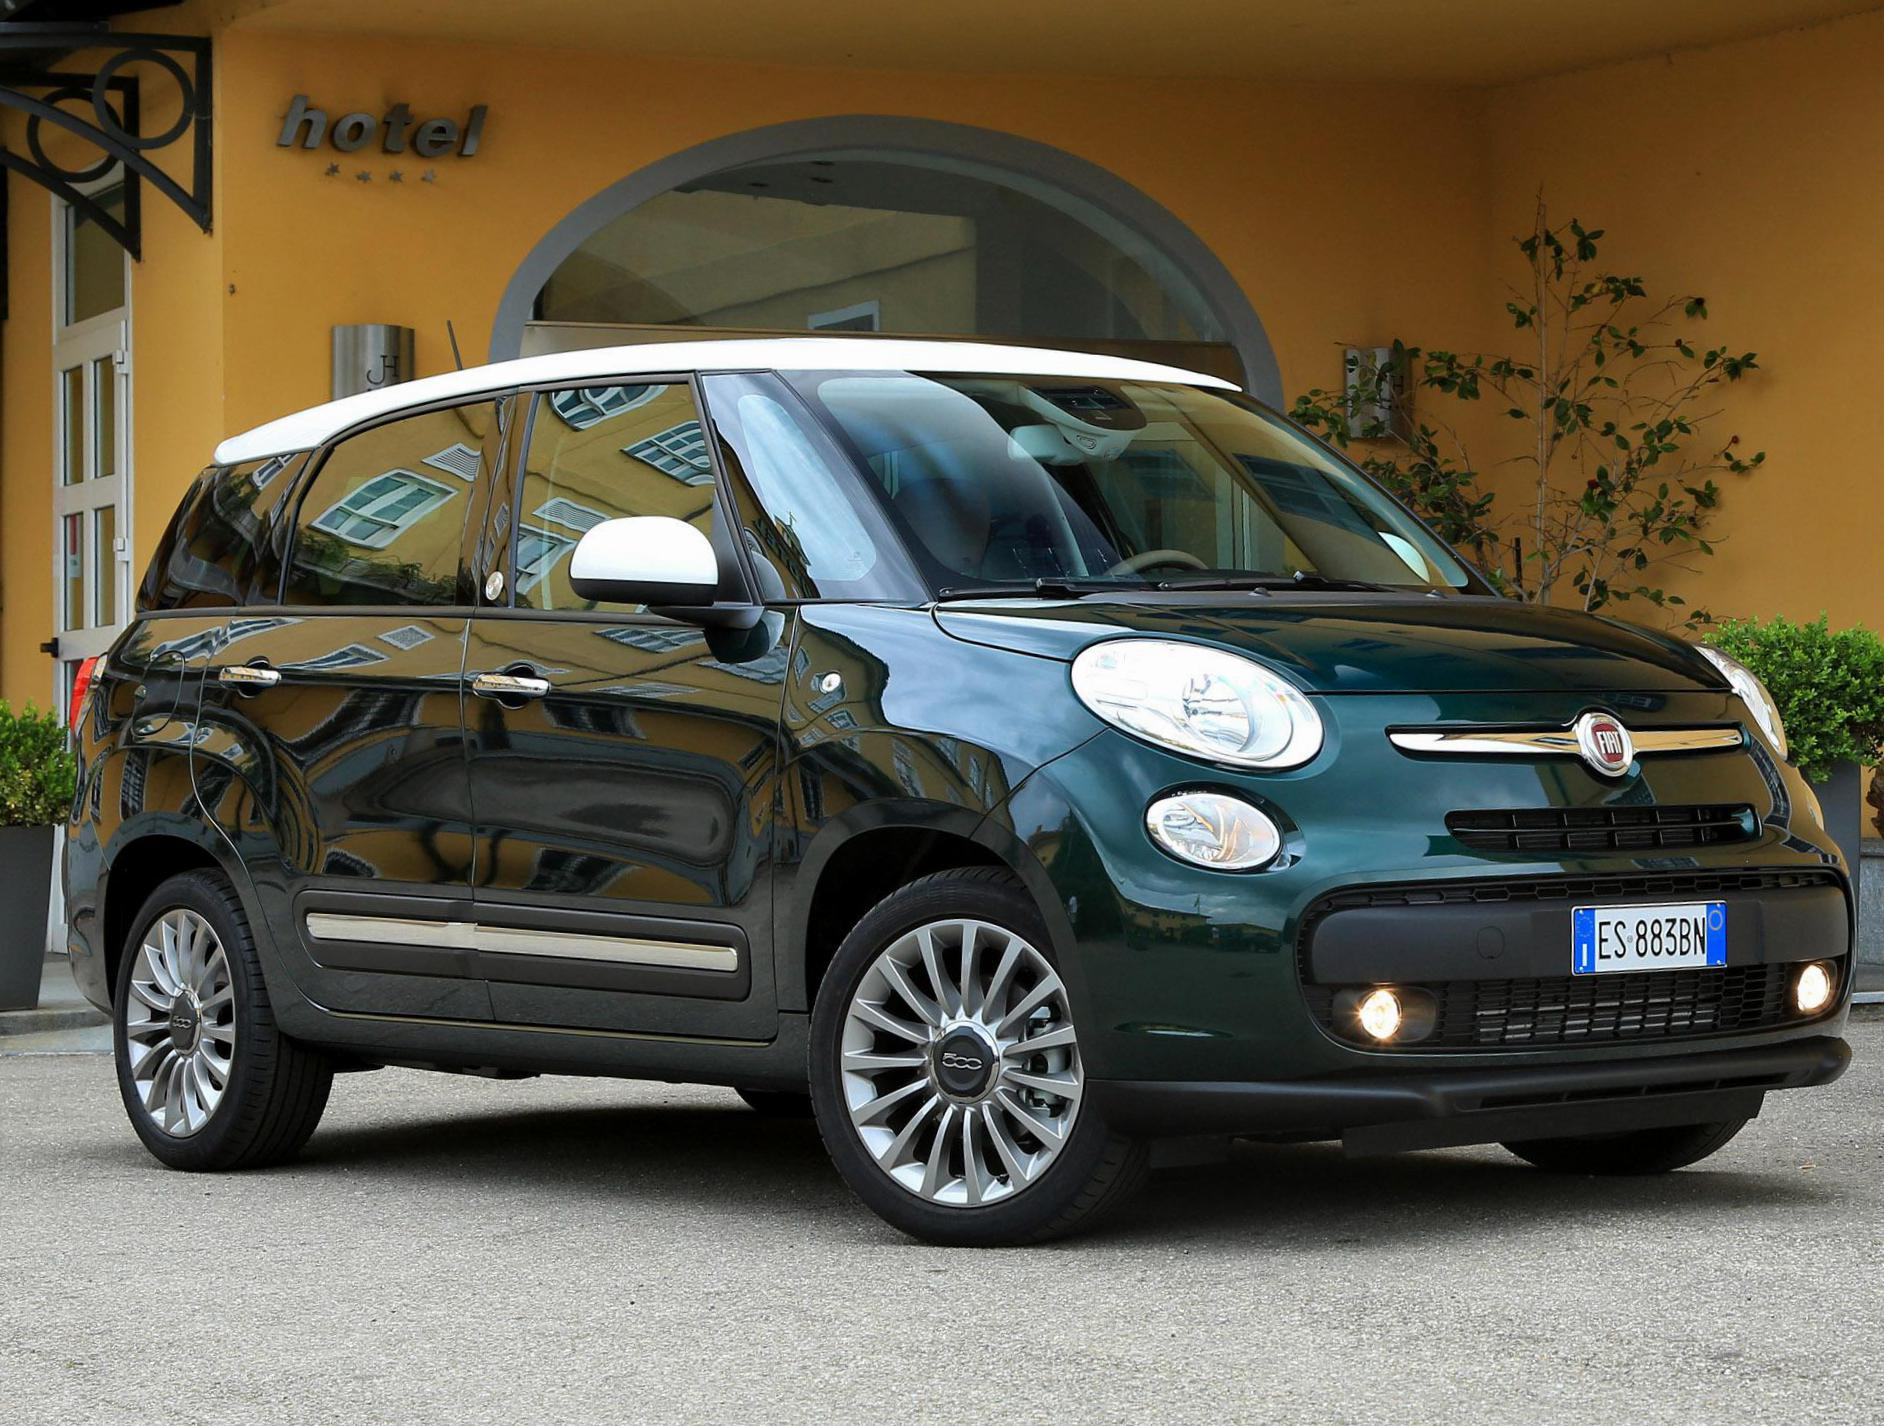 500L Living Fiat tuning hatchback